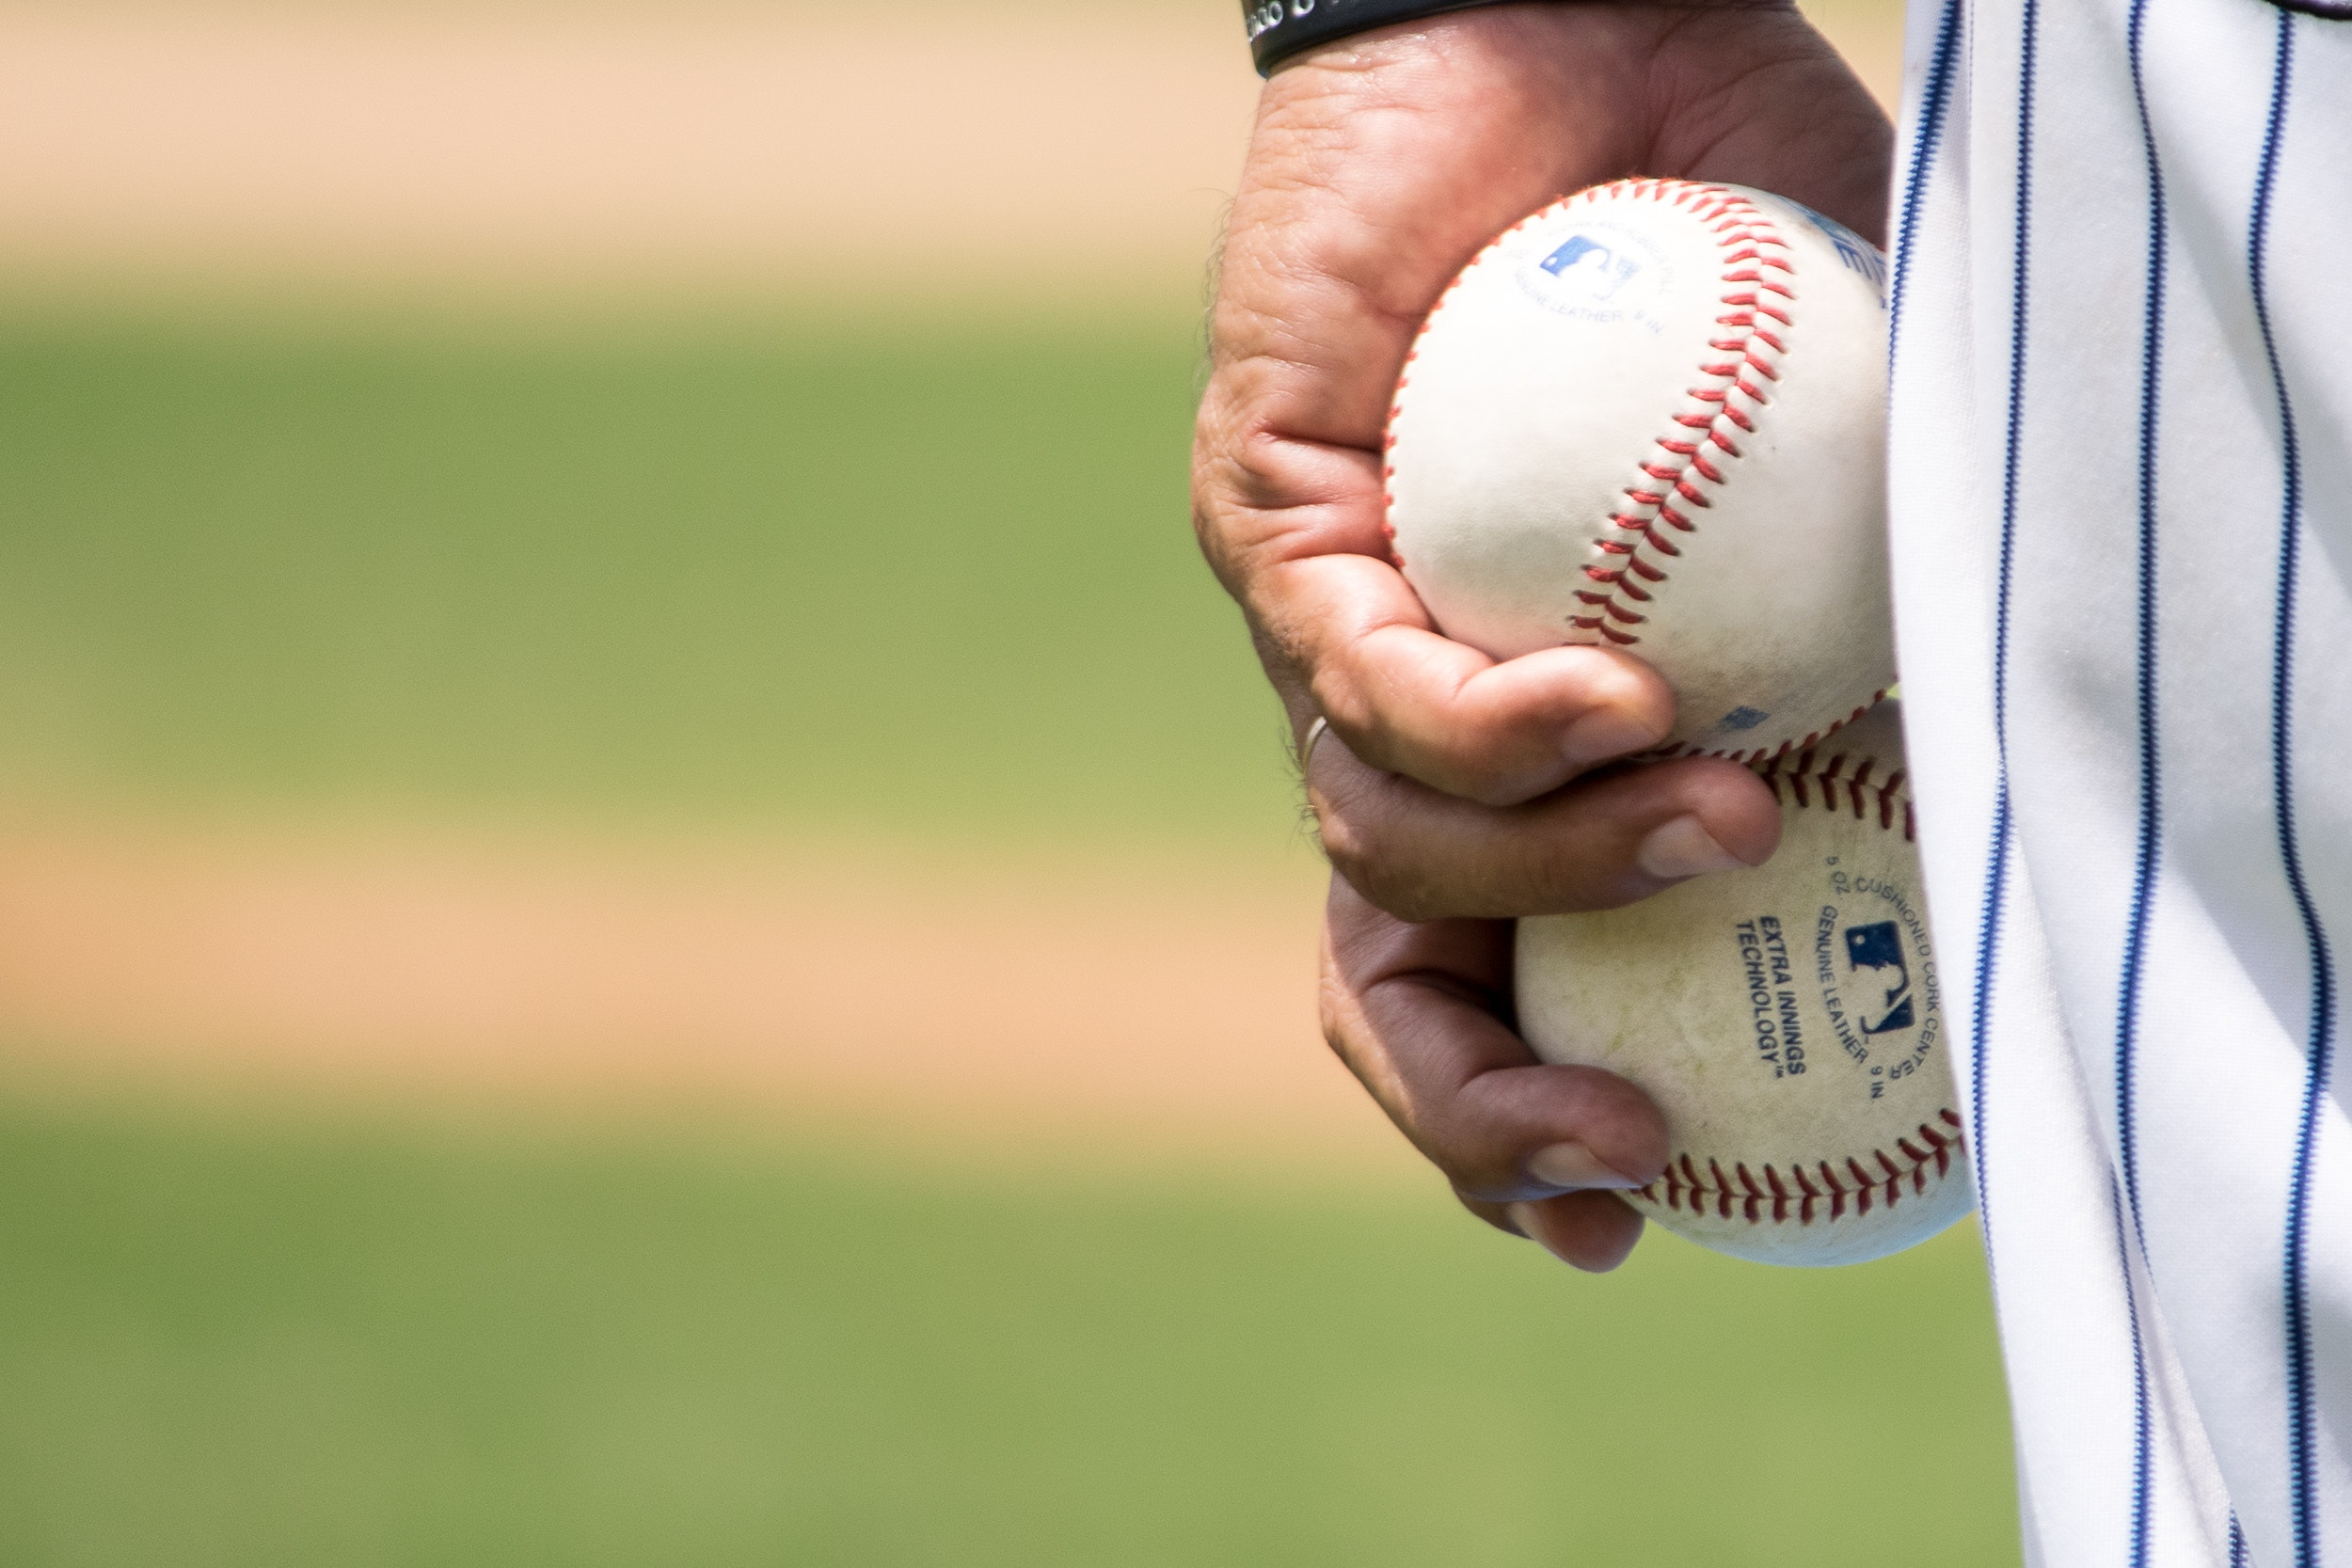 Person holding two baseballs. Photo by Jose Morales on Unsplash